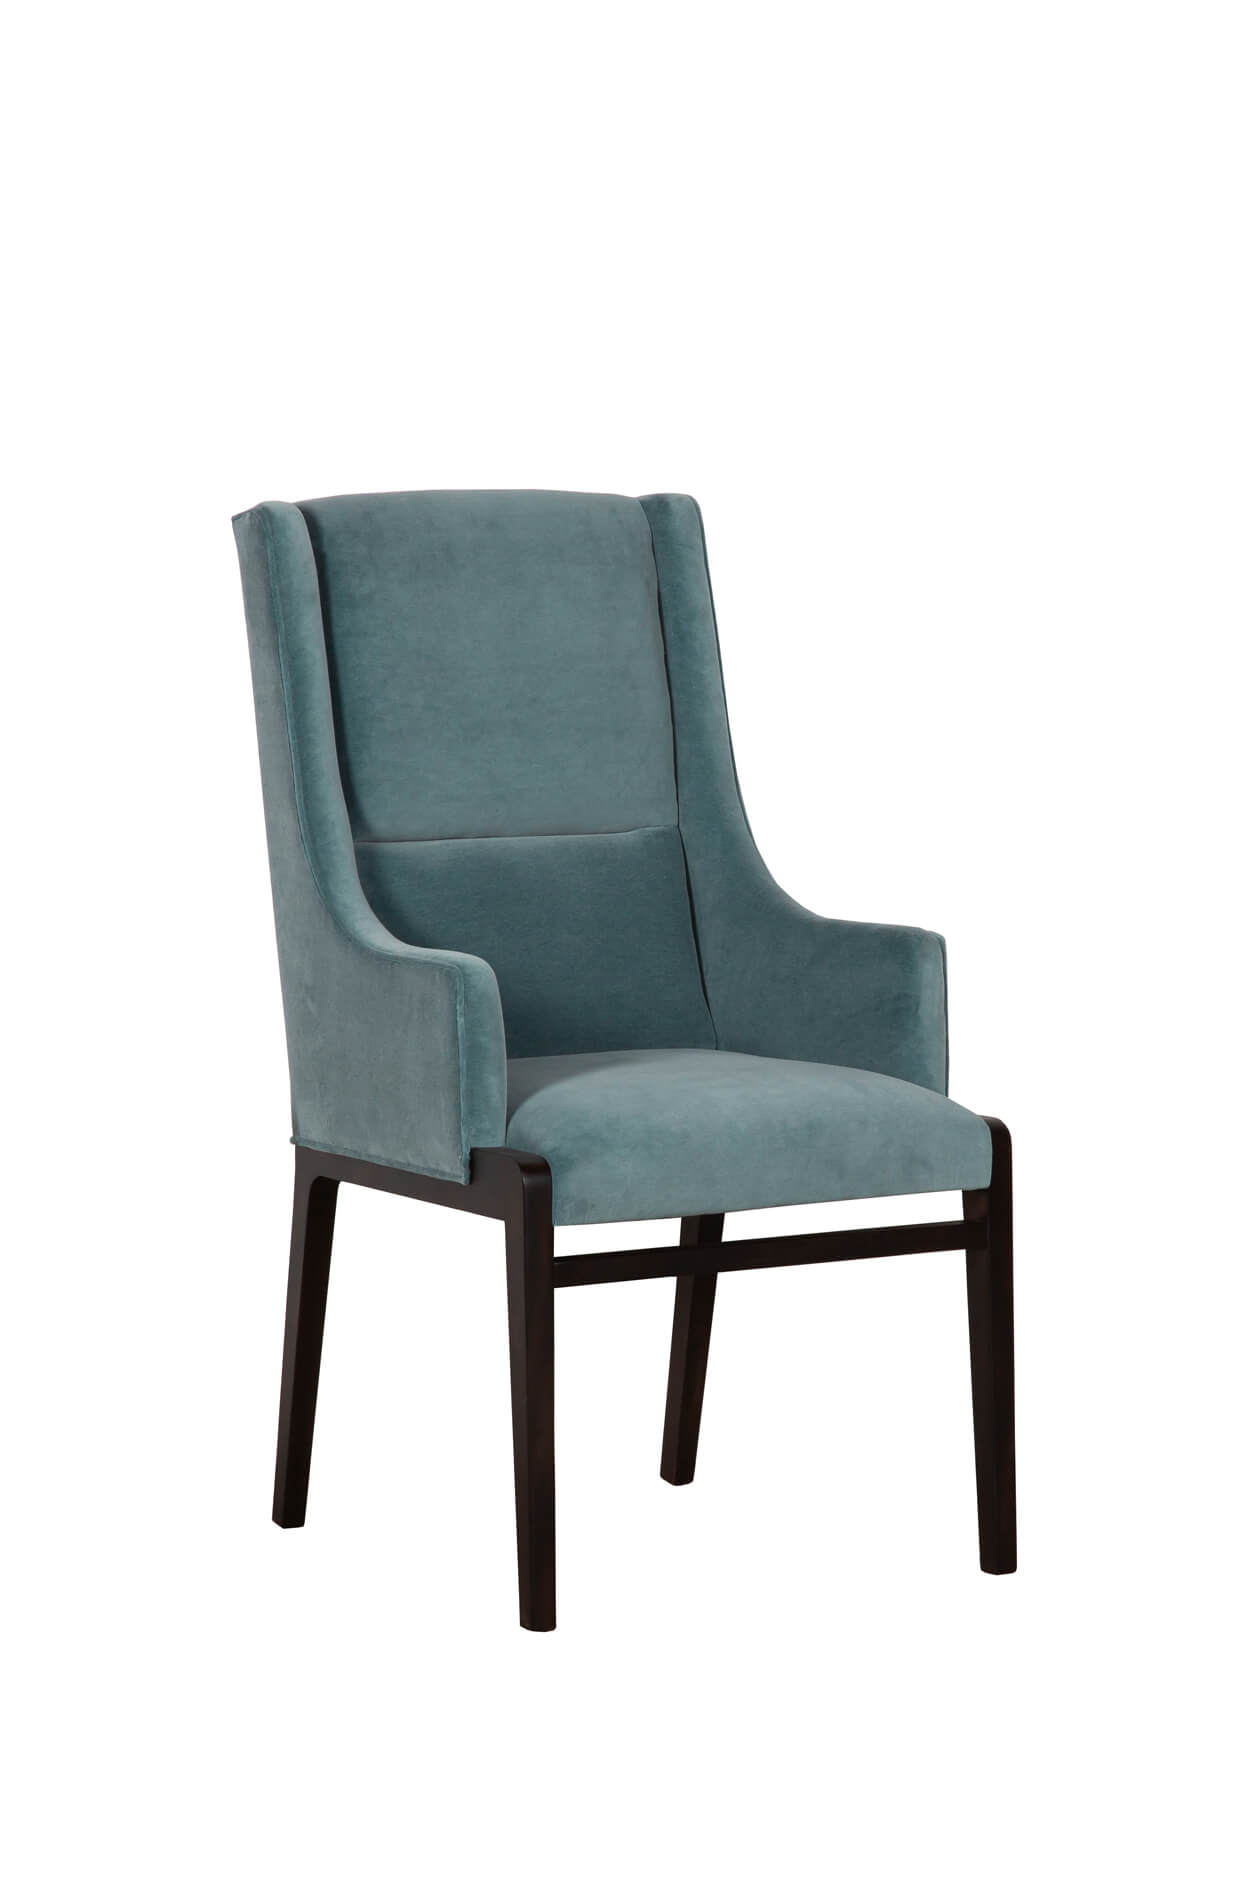 Briarcroft Upholstered Dining Chair